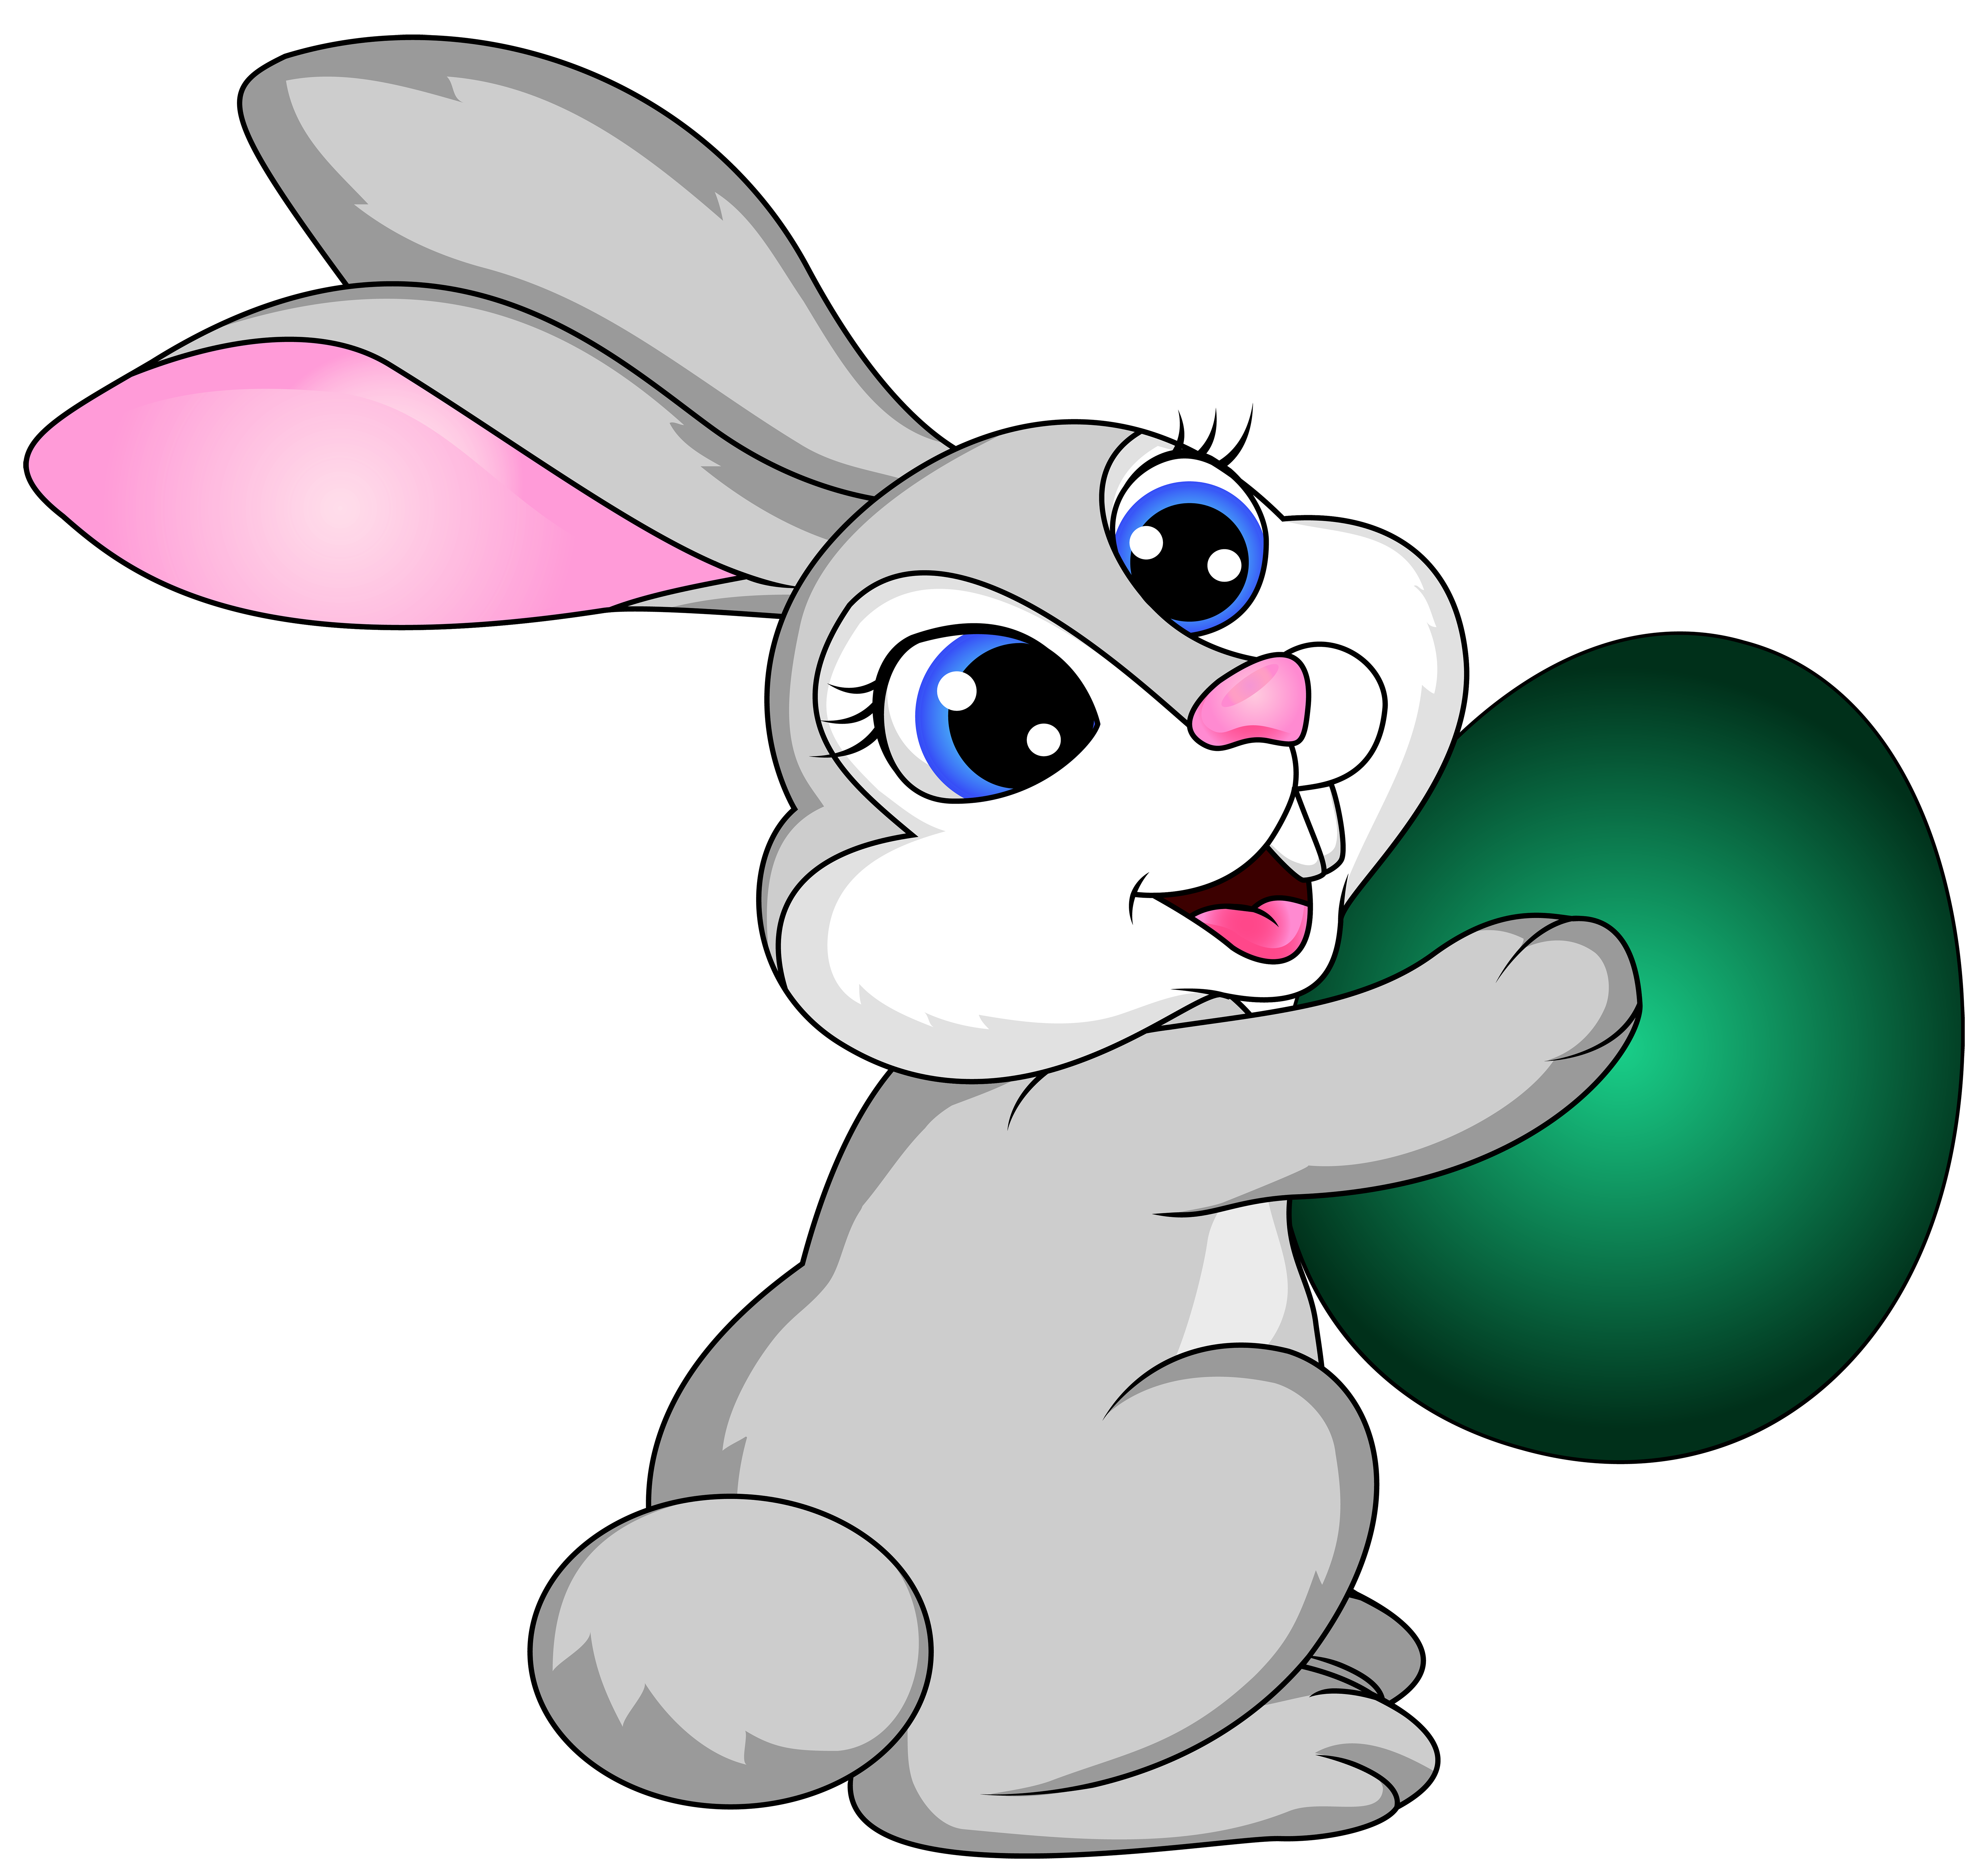 Chihuahua clipart transparent. Easter bunny background transparentpng